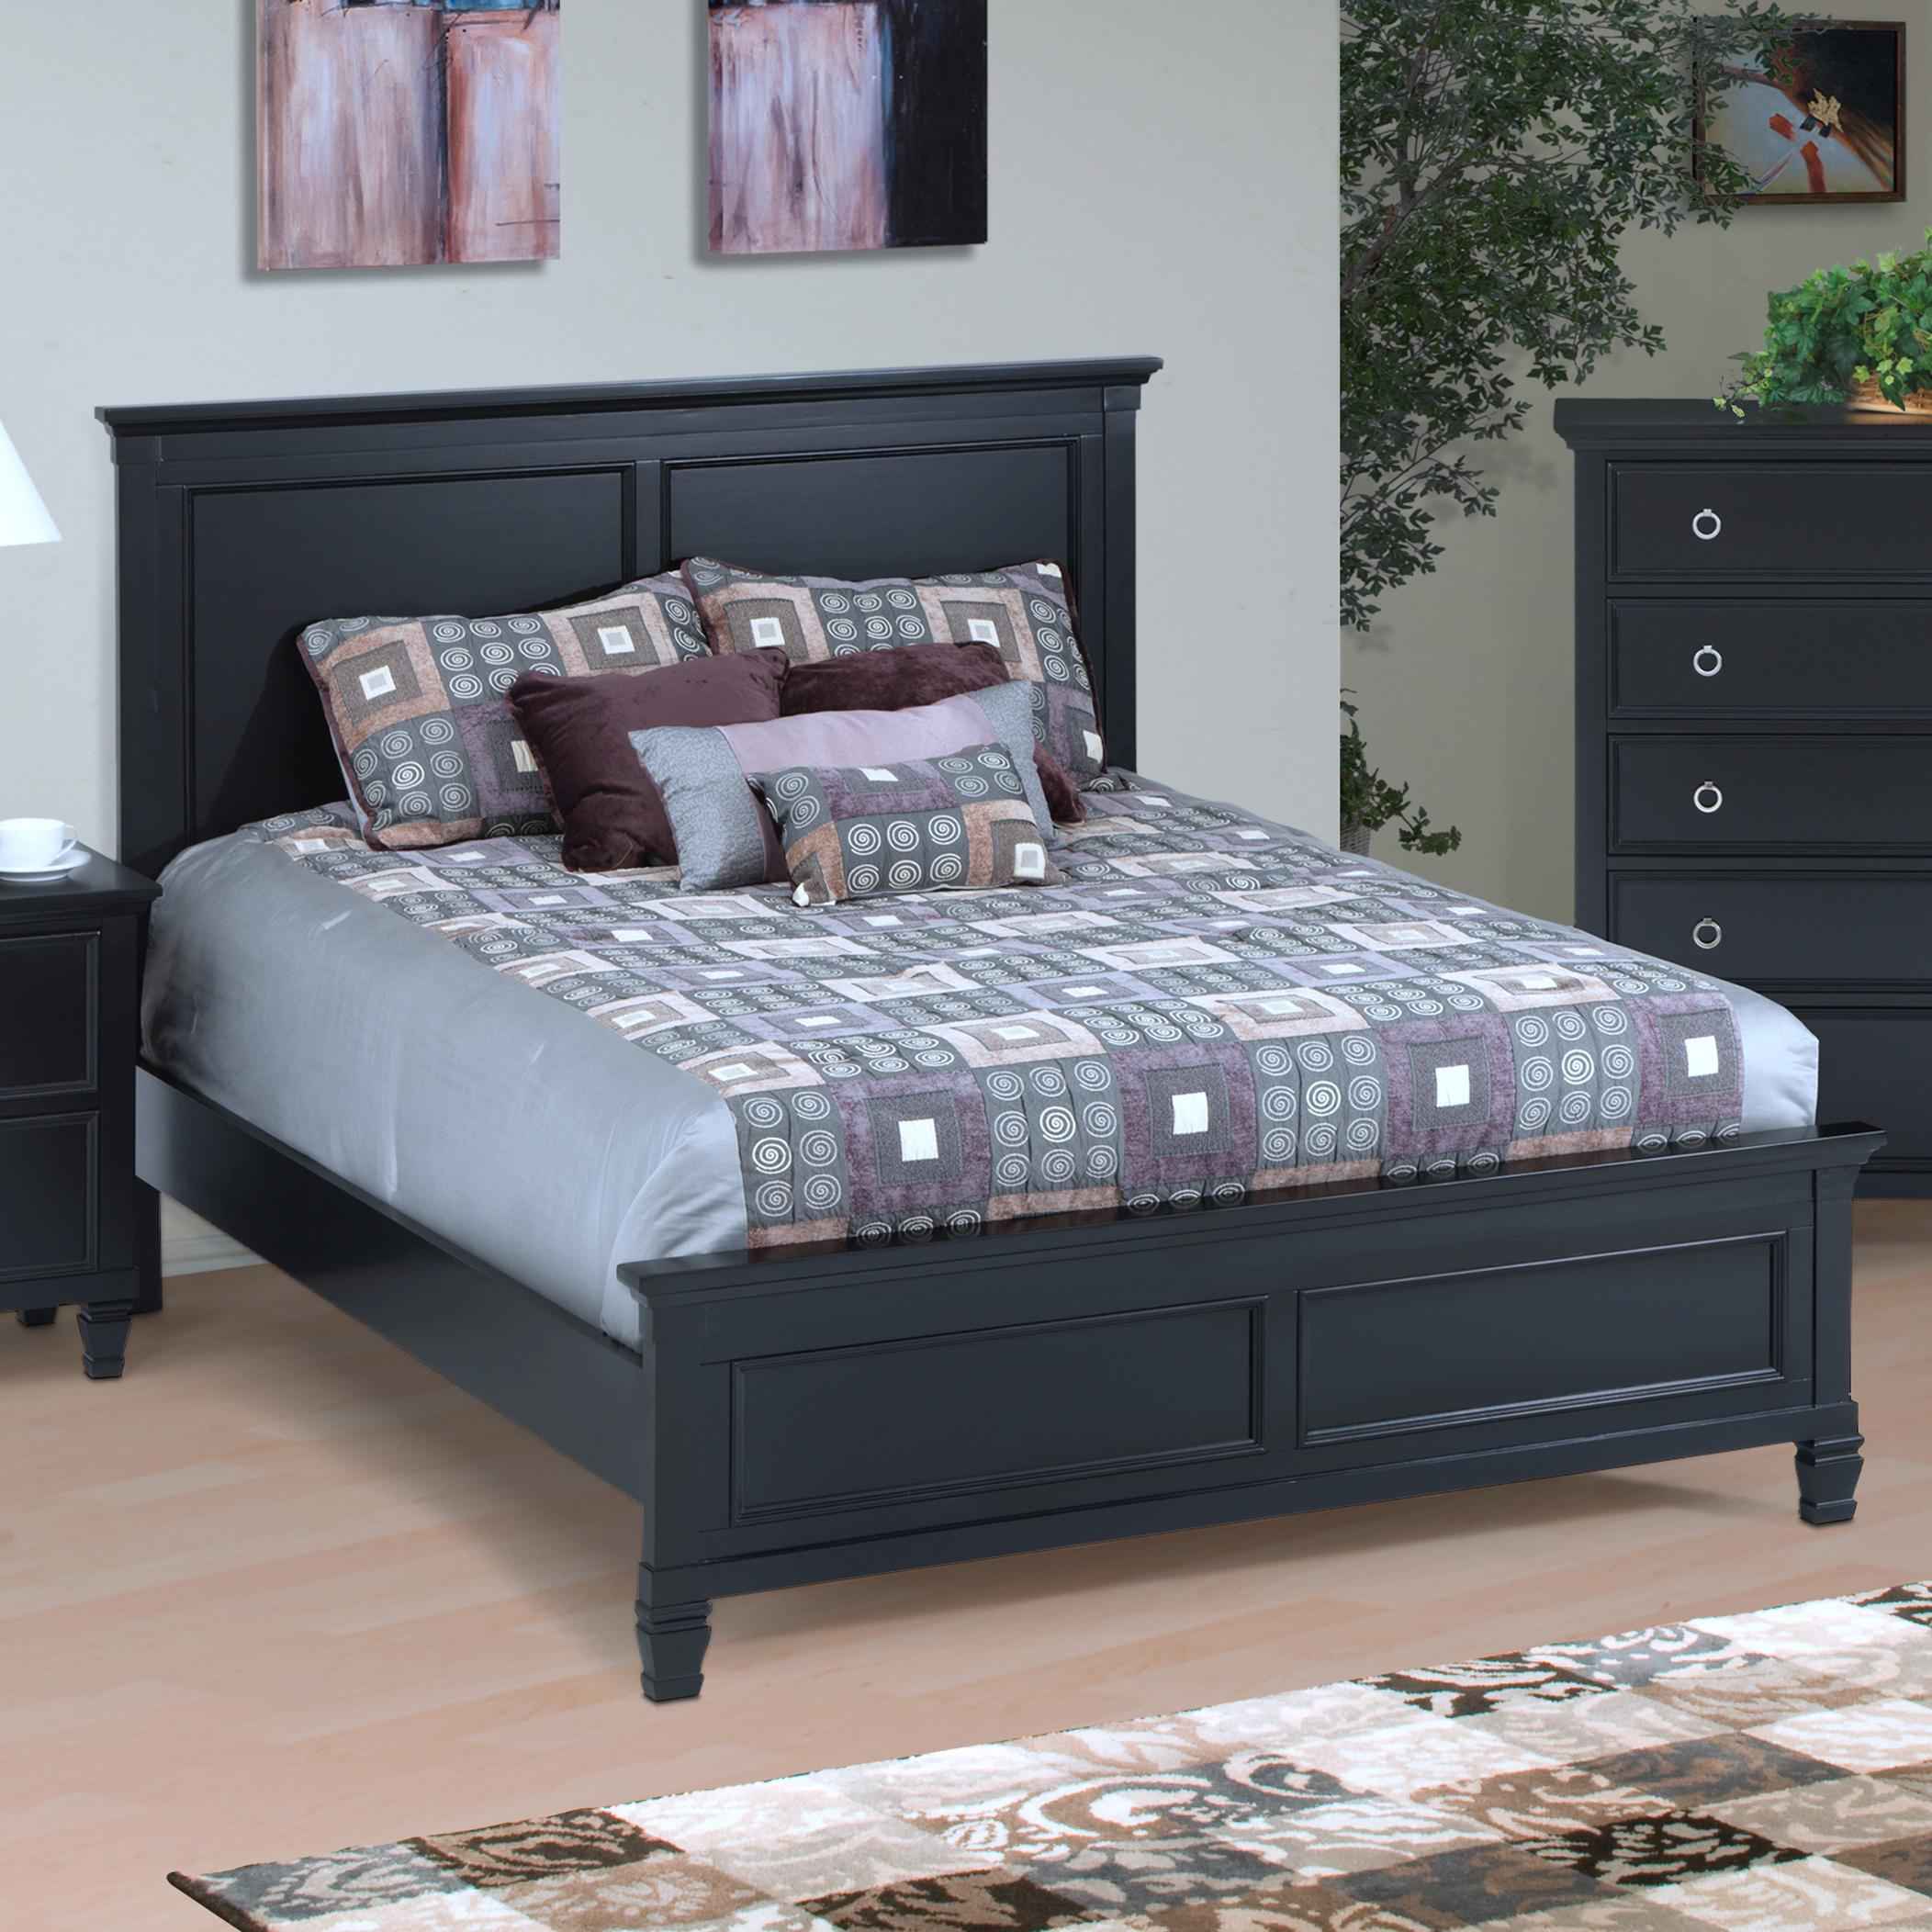 Tamarack Twin Panel Bed by New Classic at Beck's Furniture